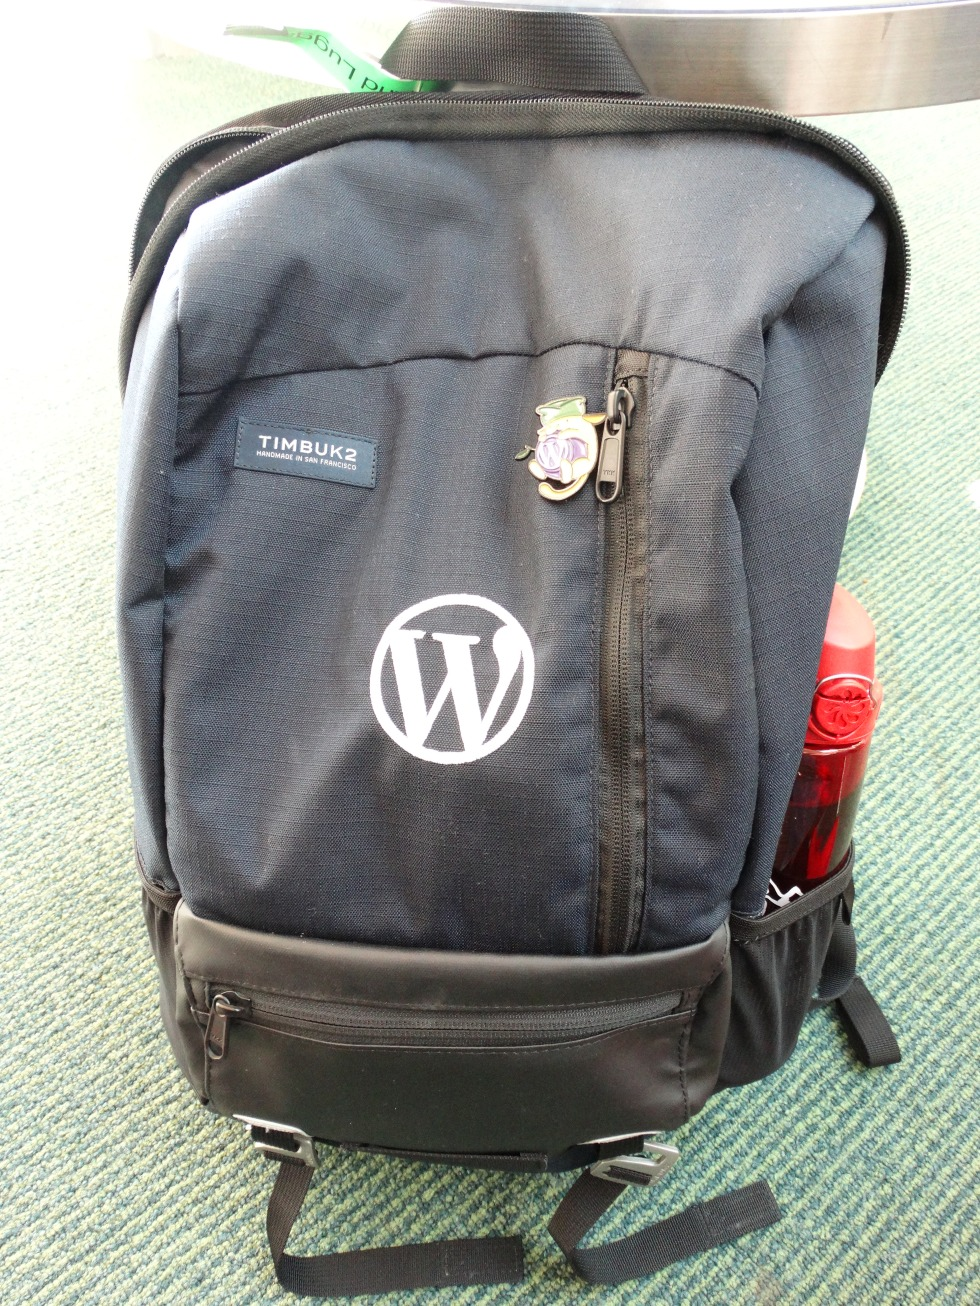 Chait's Timbuk2 Bag